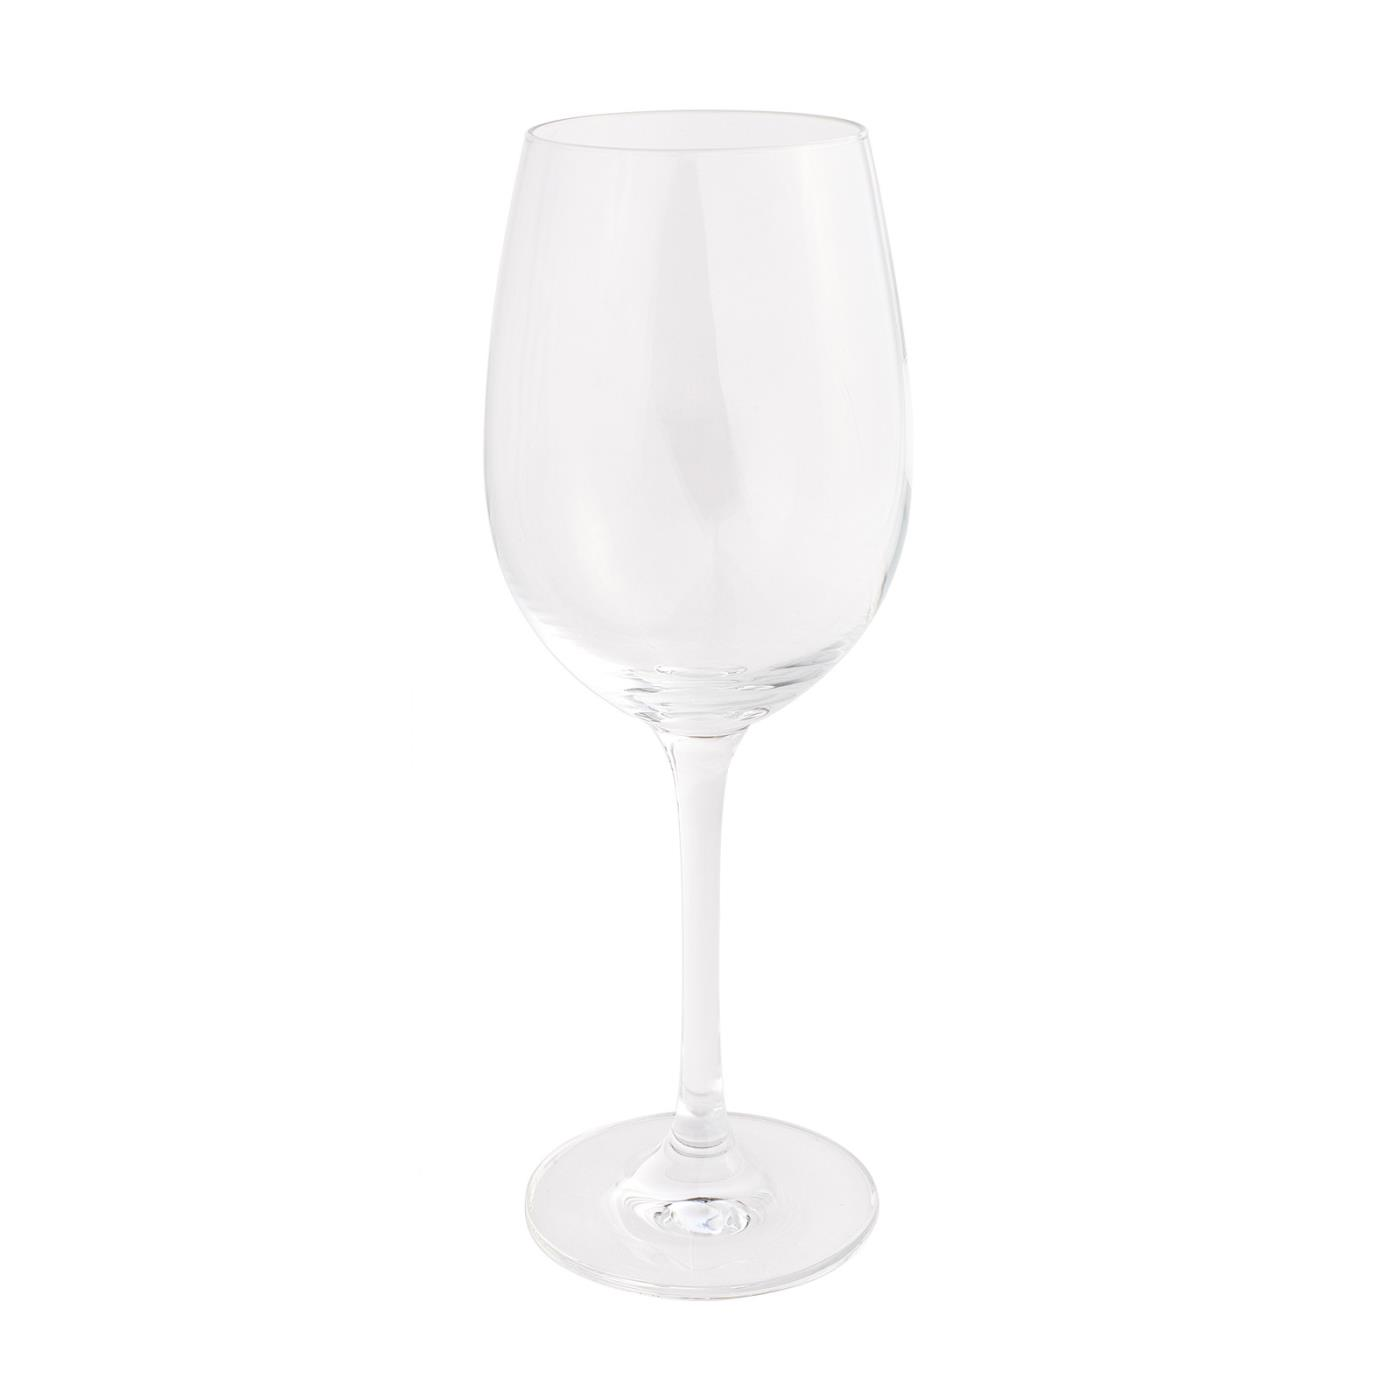 Classico Collection -  White Wine Glass 13.7 oz